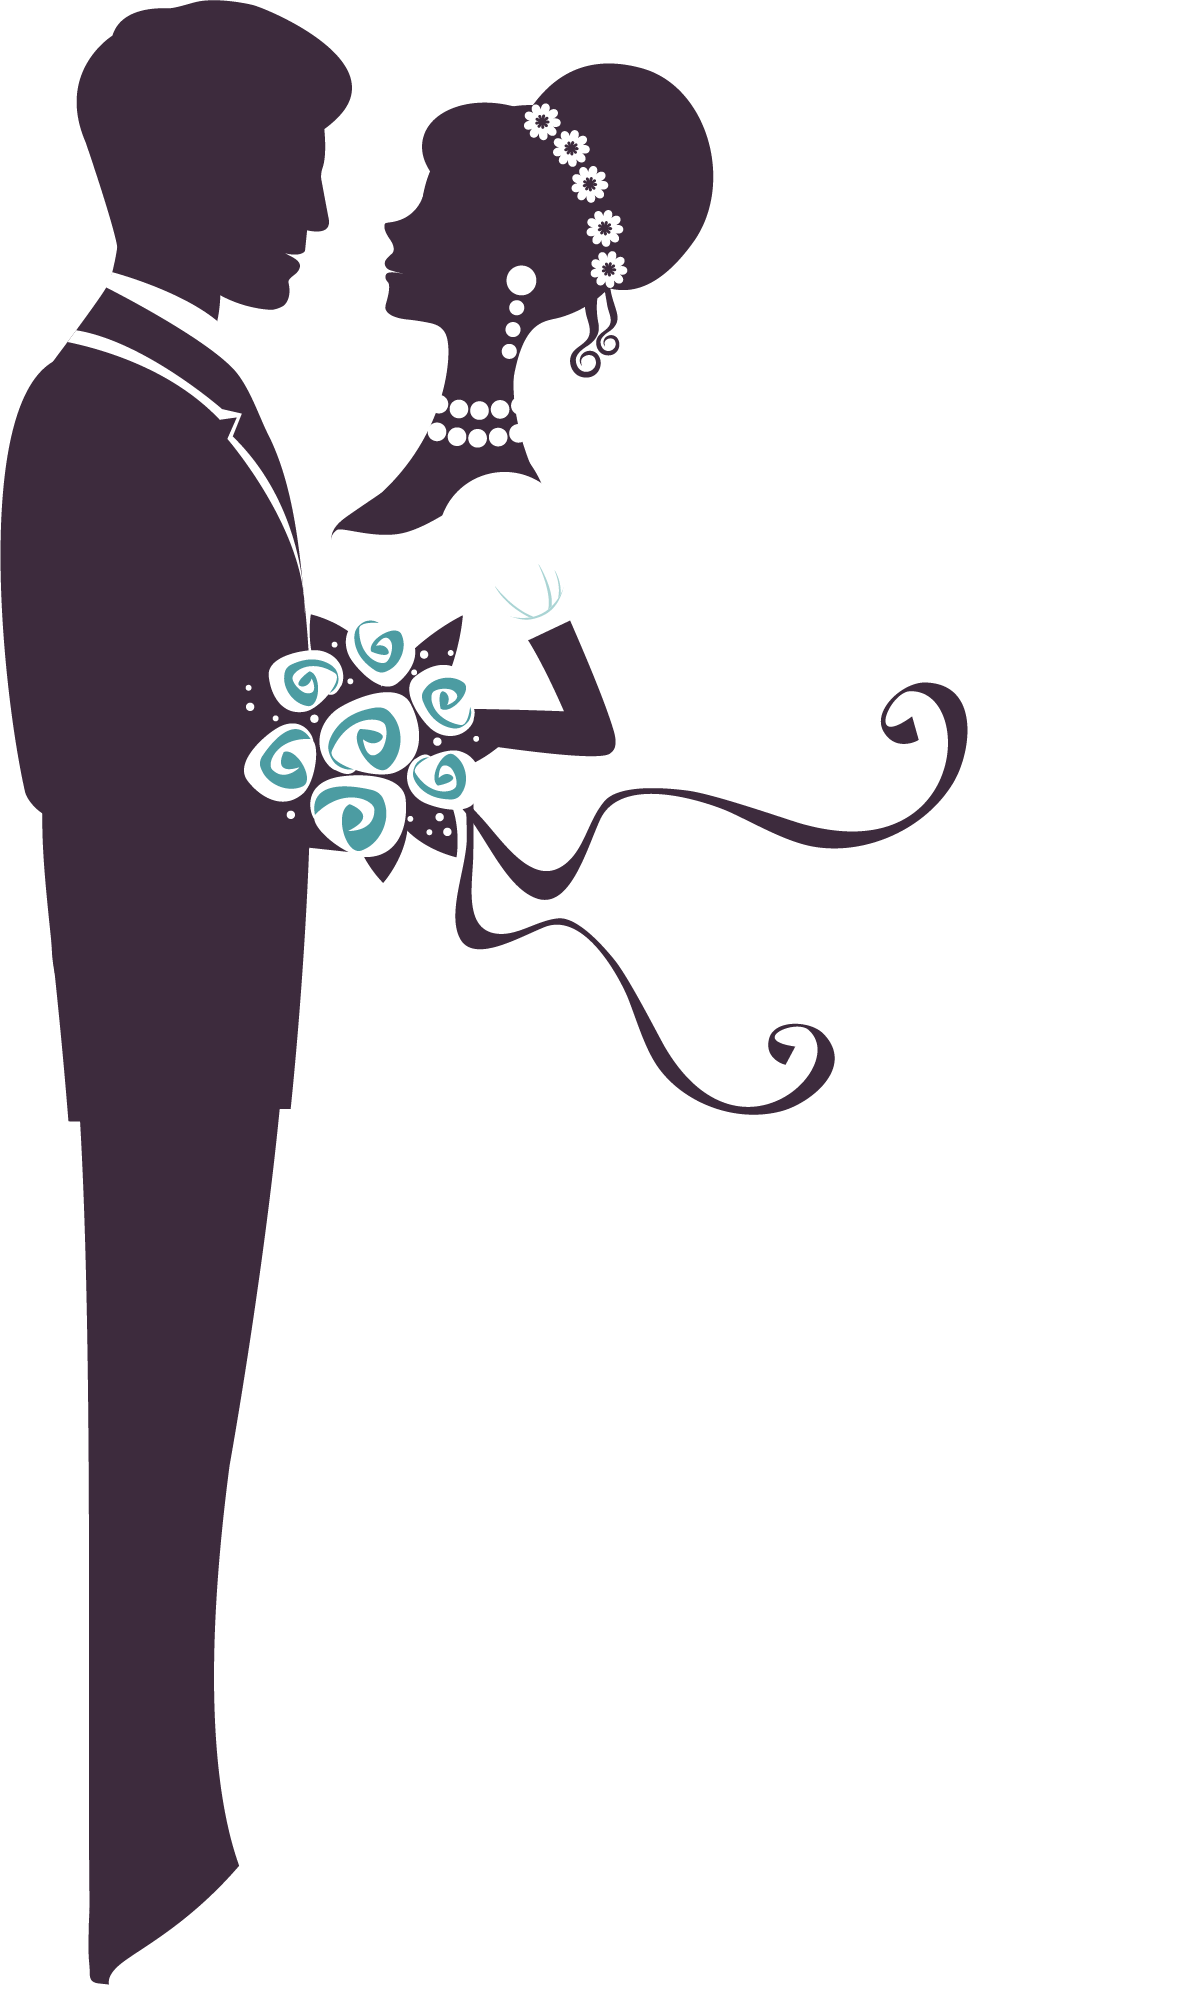 Bridegroom silhouette hand drawn. Marriage clipart married man